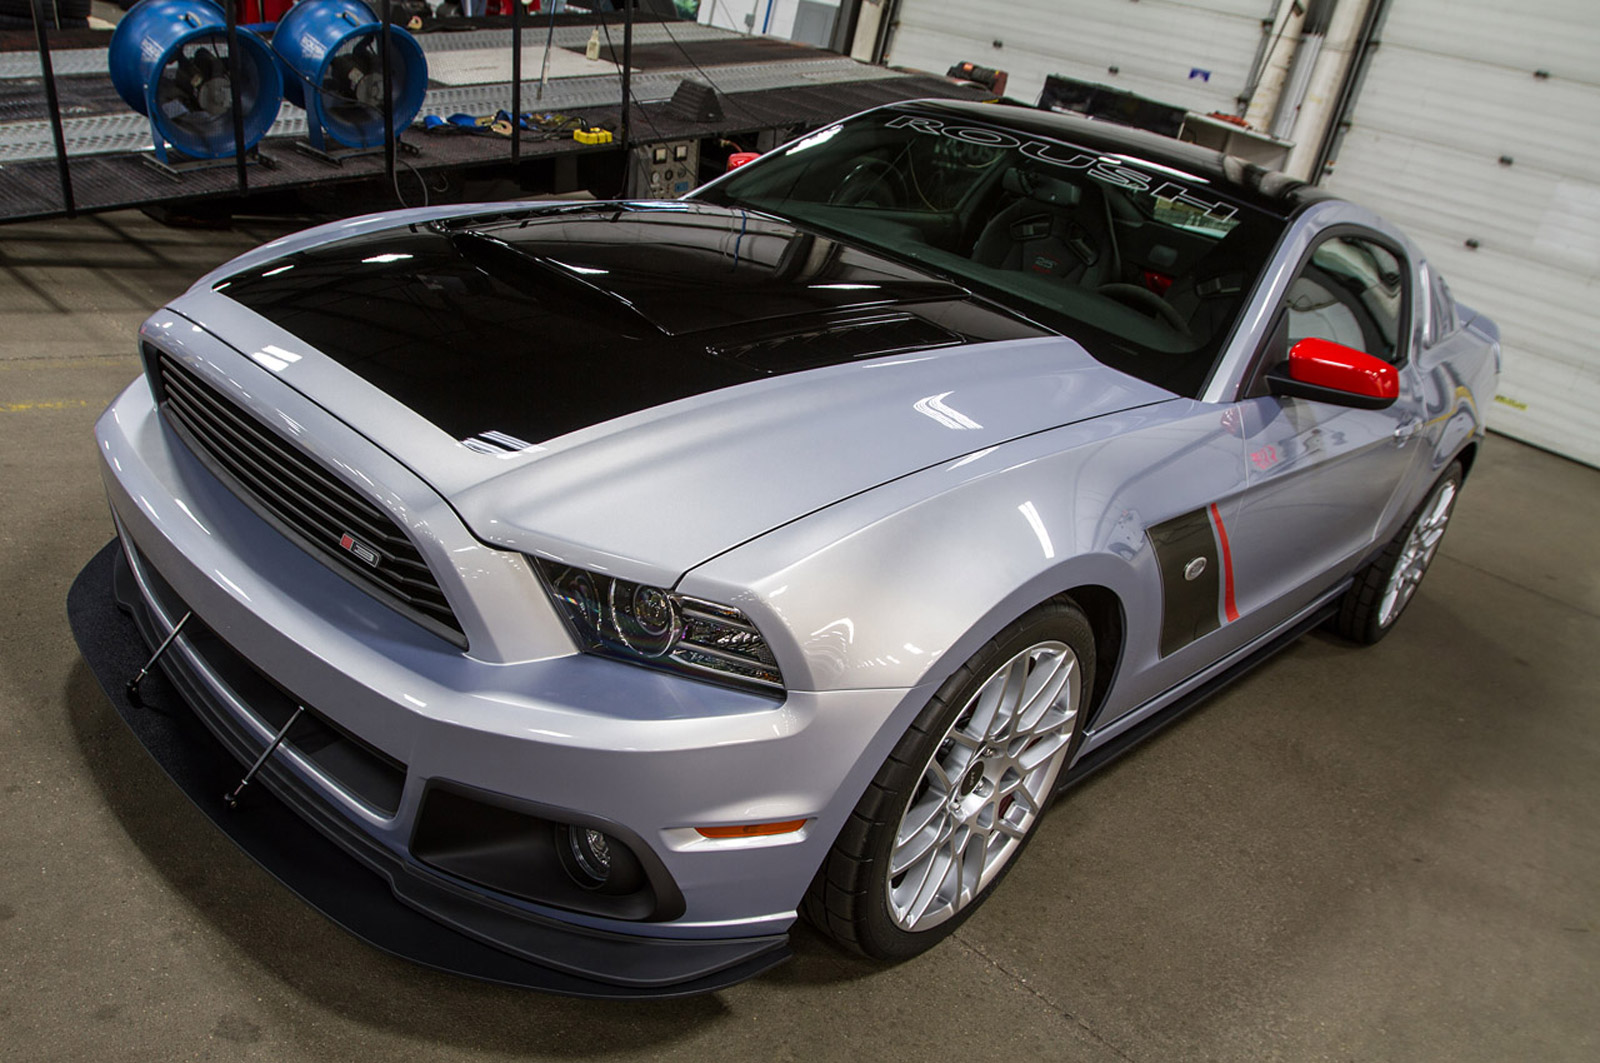 2013 Ford Mustang Tuned By Roush Raises 100000 For Charity Tvr Remote Starter